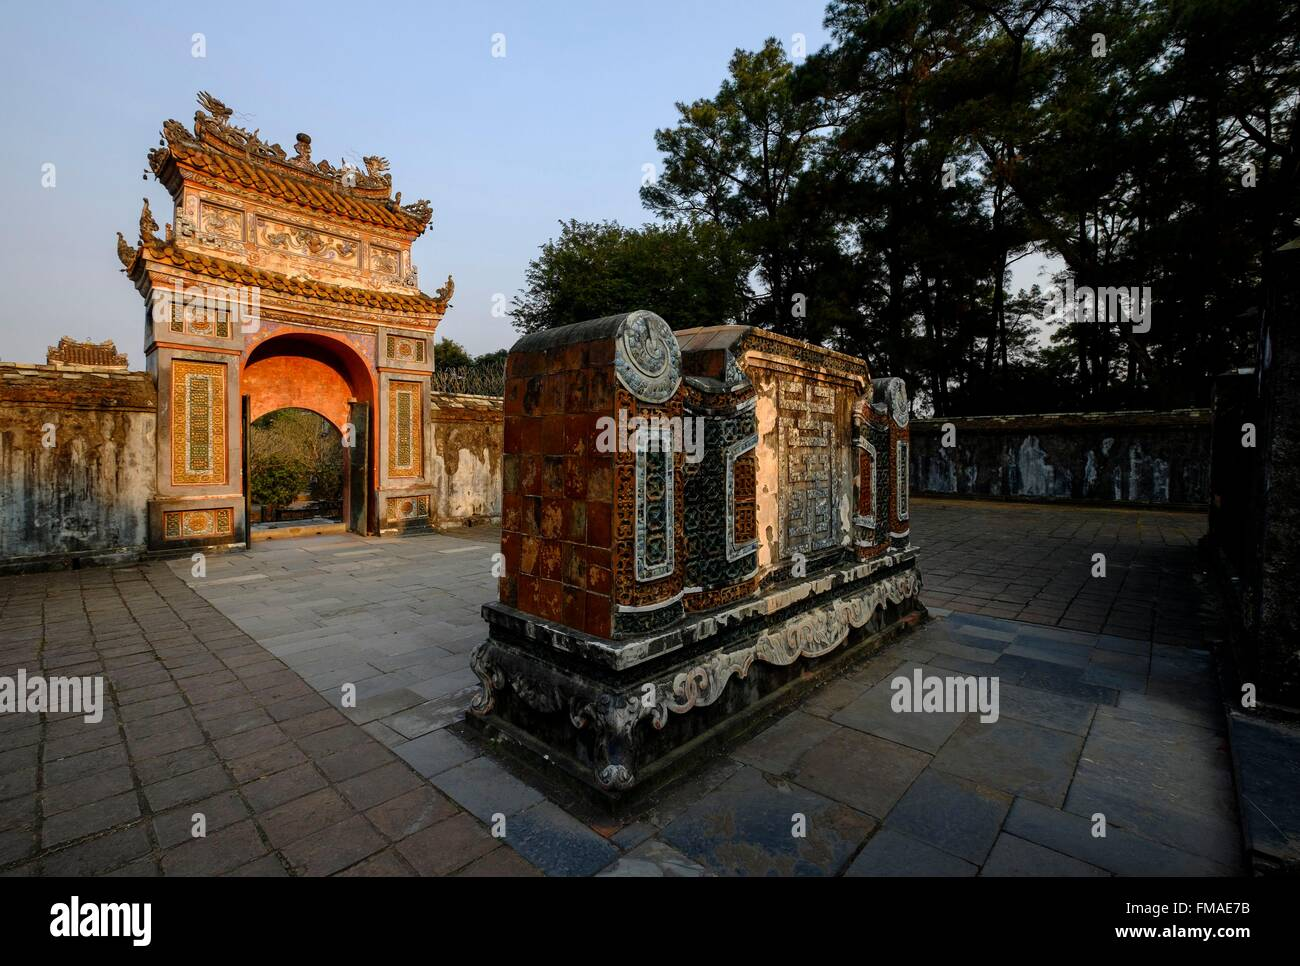 Vietnam, Thua Thien Hue province, Hue, Group of Hue monuments listed as World Heritage site by UNESCO, Tomb of emperor - Stock Image